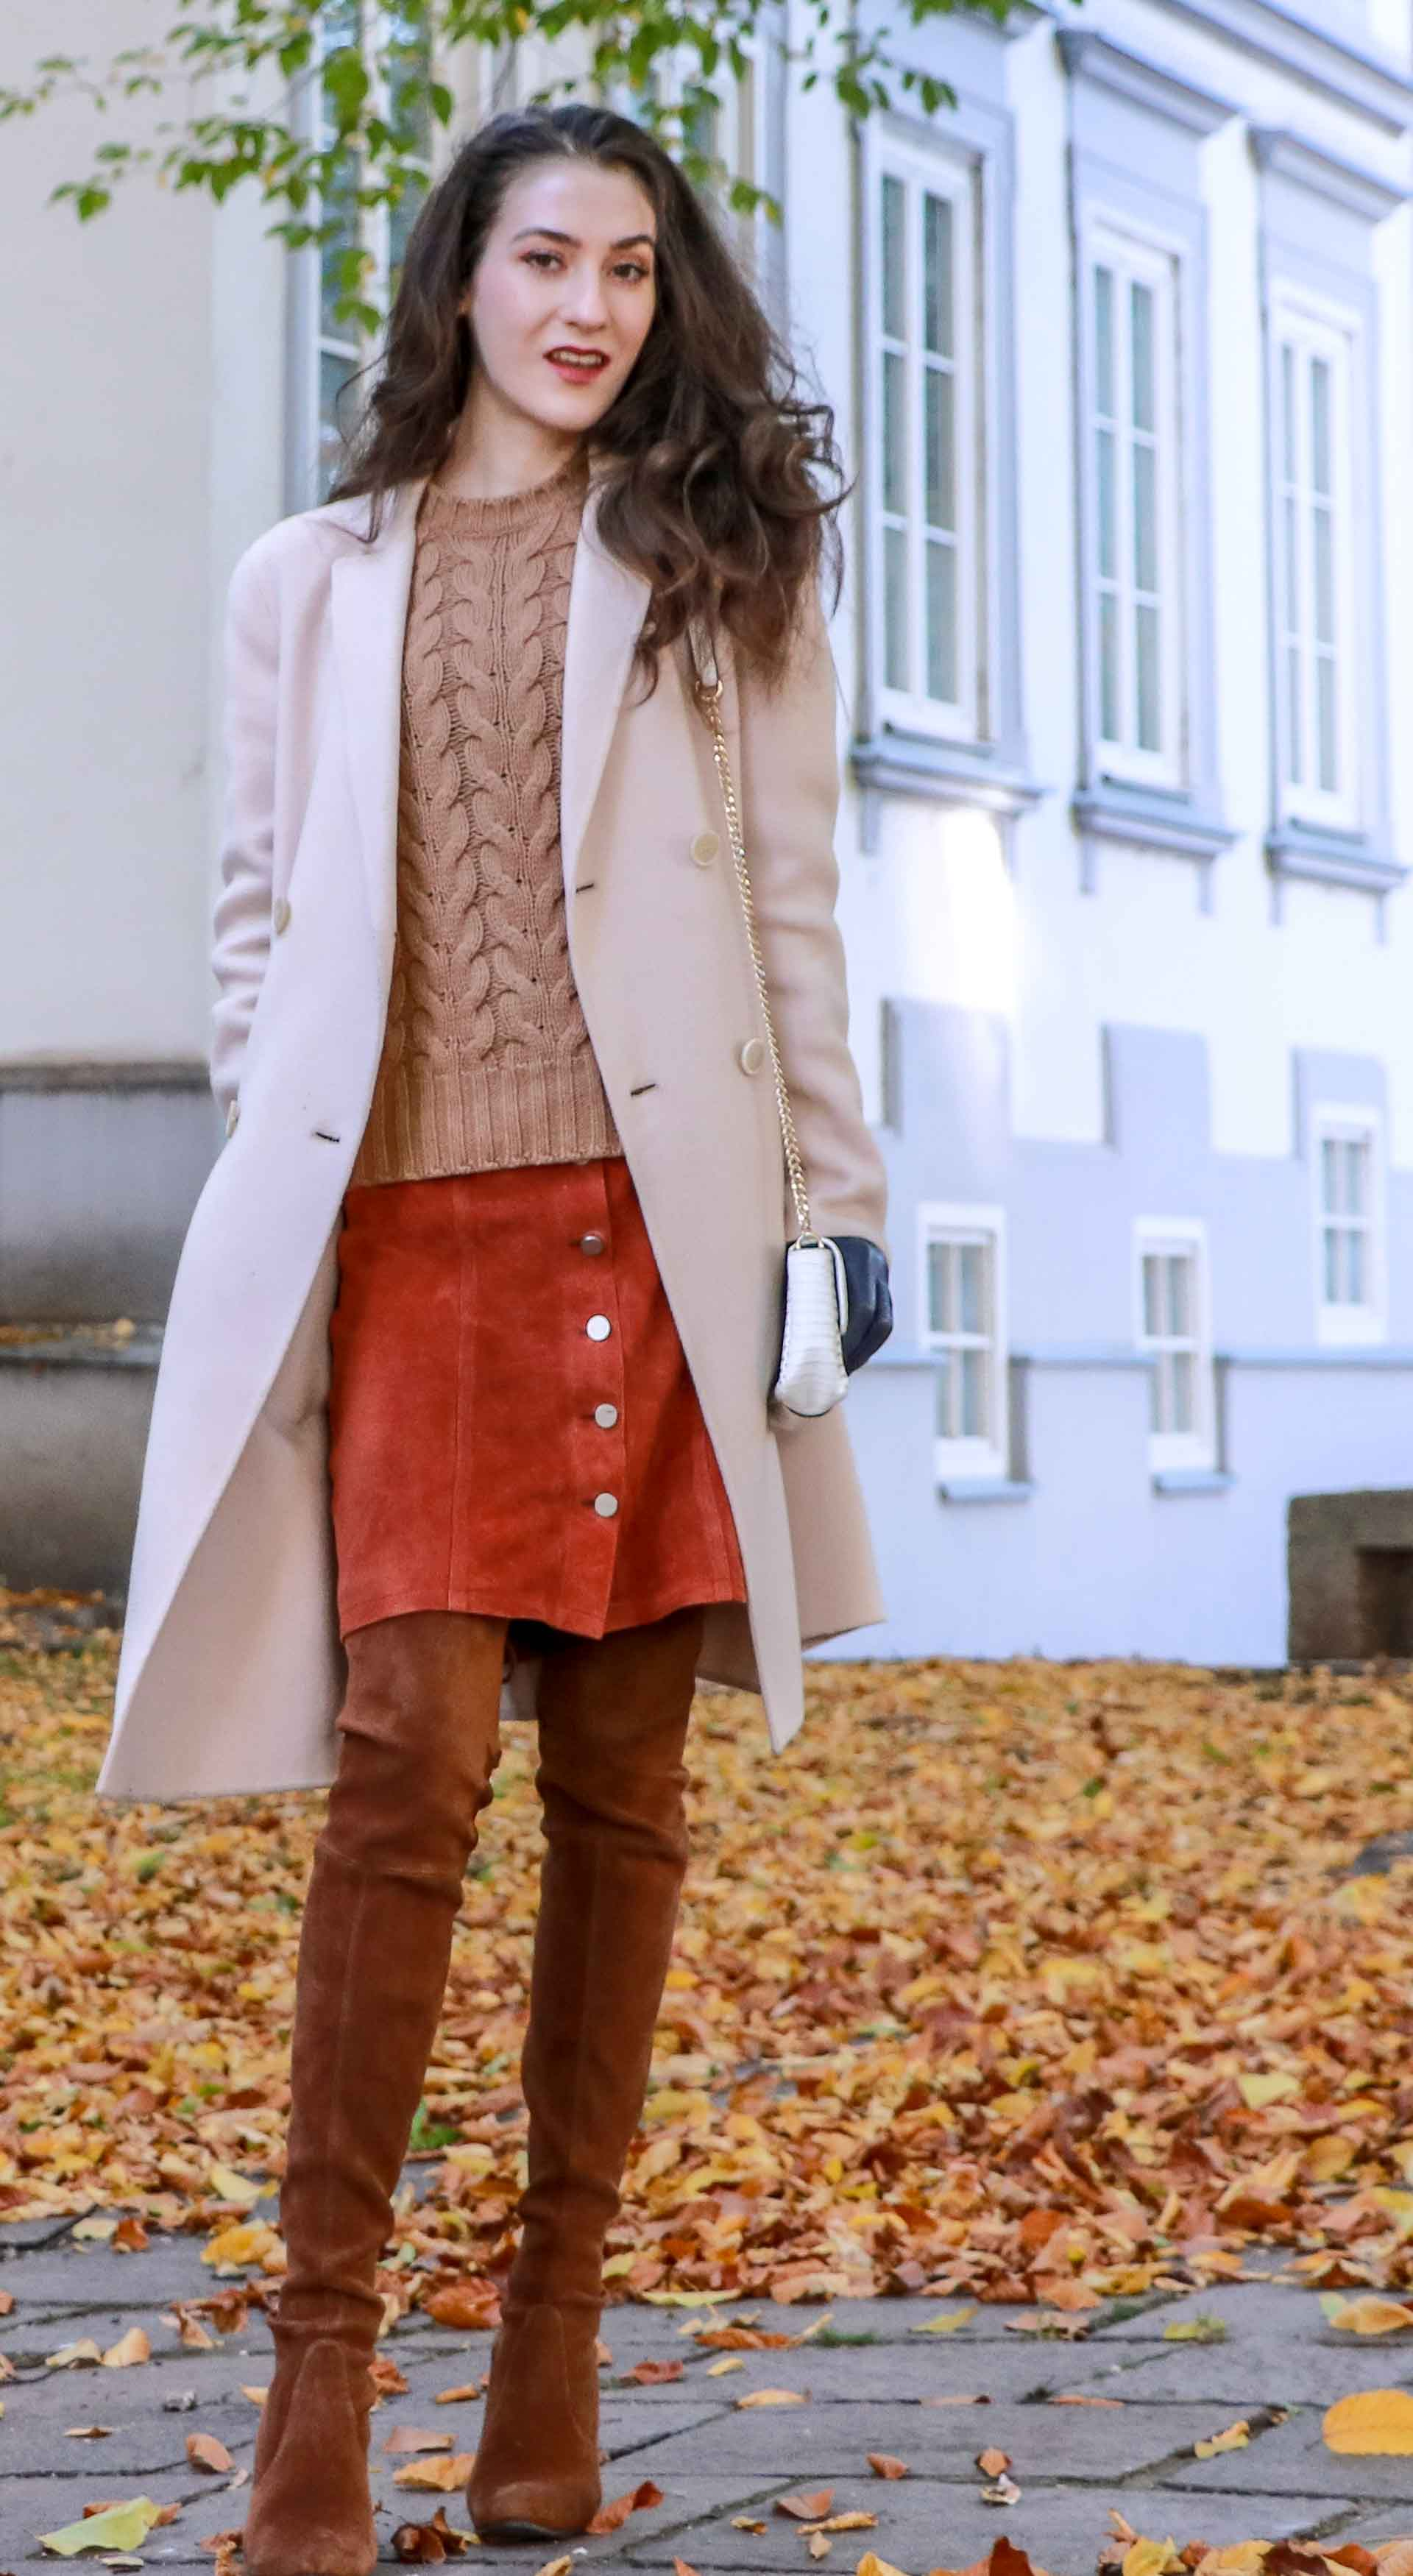 Beautiful Slovenian Fashion Blogger Veronika Lipar of Brunette from Wall wearing Max Mara camel cable knit sweater, front button brown suede skirt, Stuart Weitzman brown over the knee boots, Max Mara coat in fall